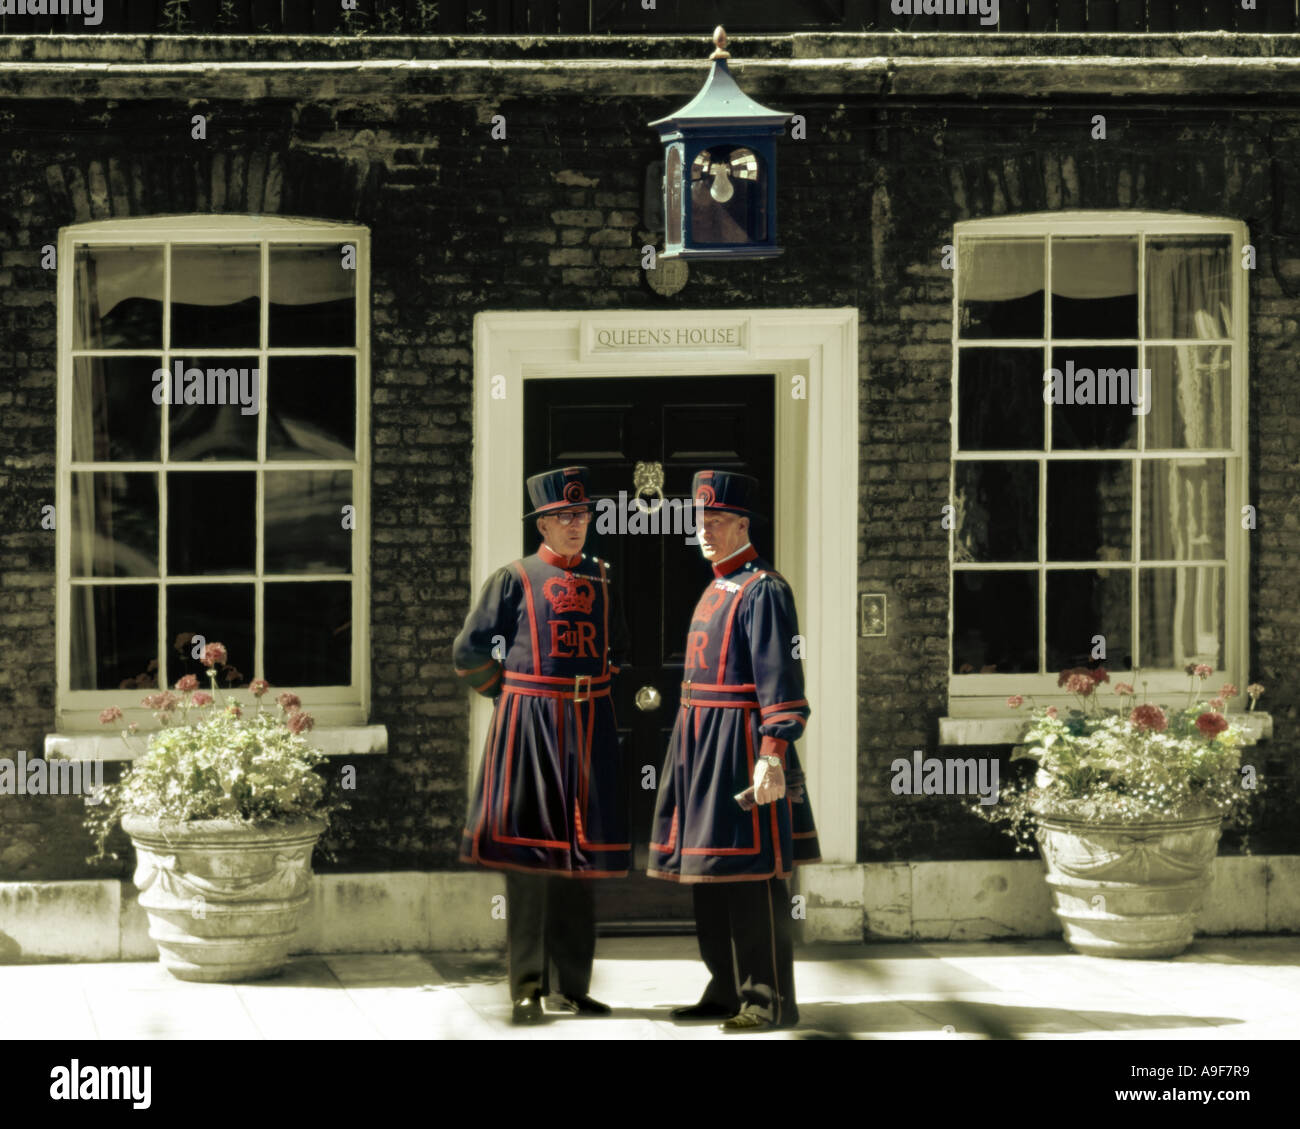 GB - LONDON: Beefeaters am Tower of London Stockfoto